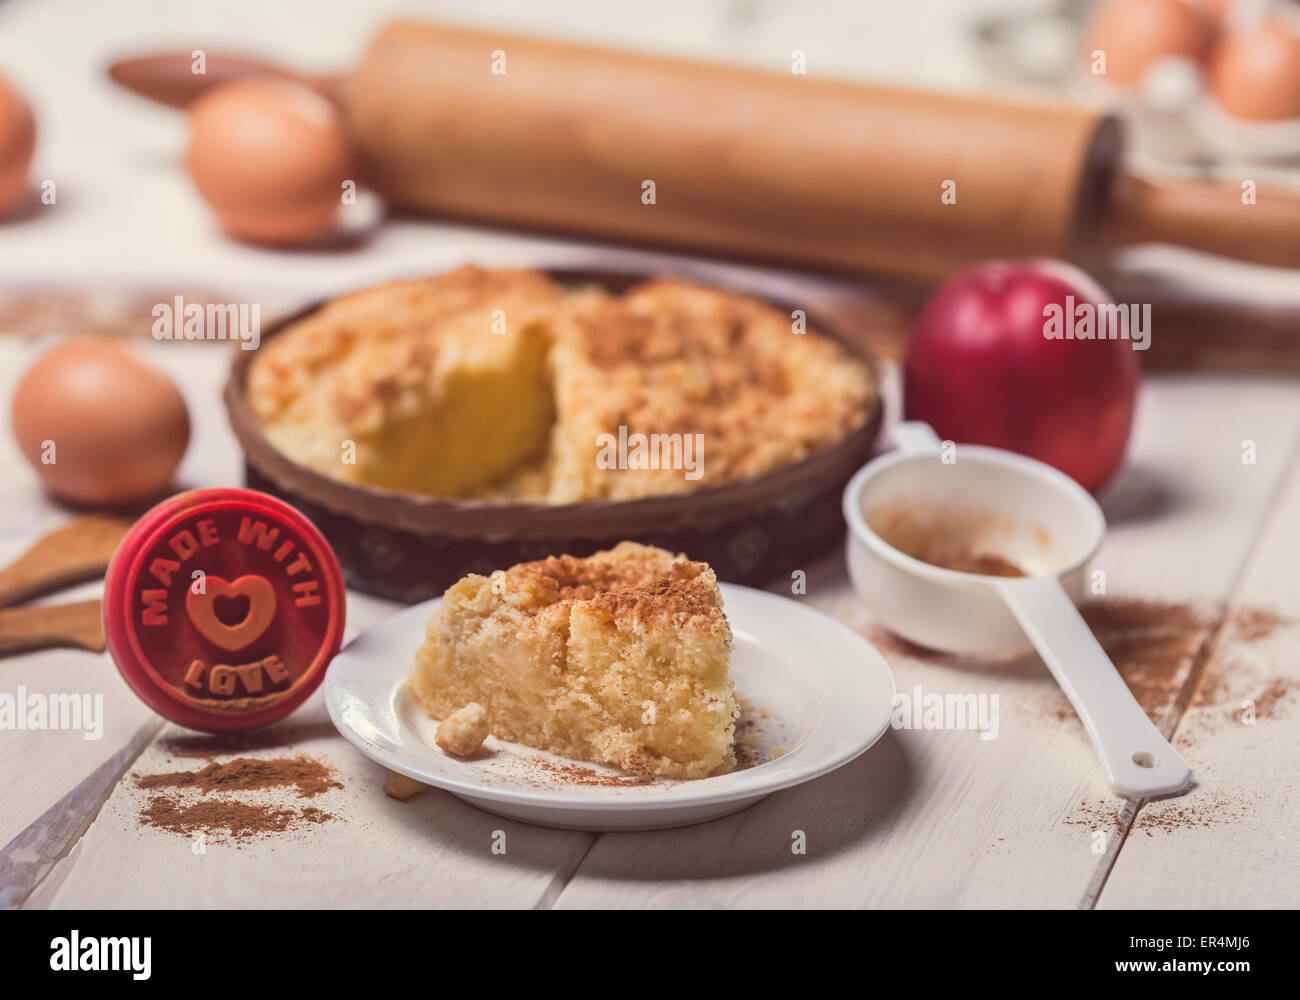 Pie apple made with love. Debica, Poland - Stock Image